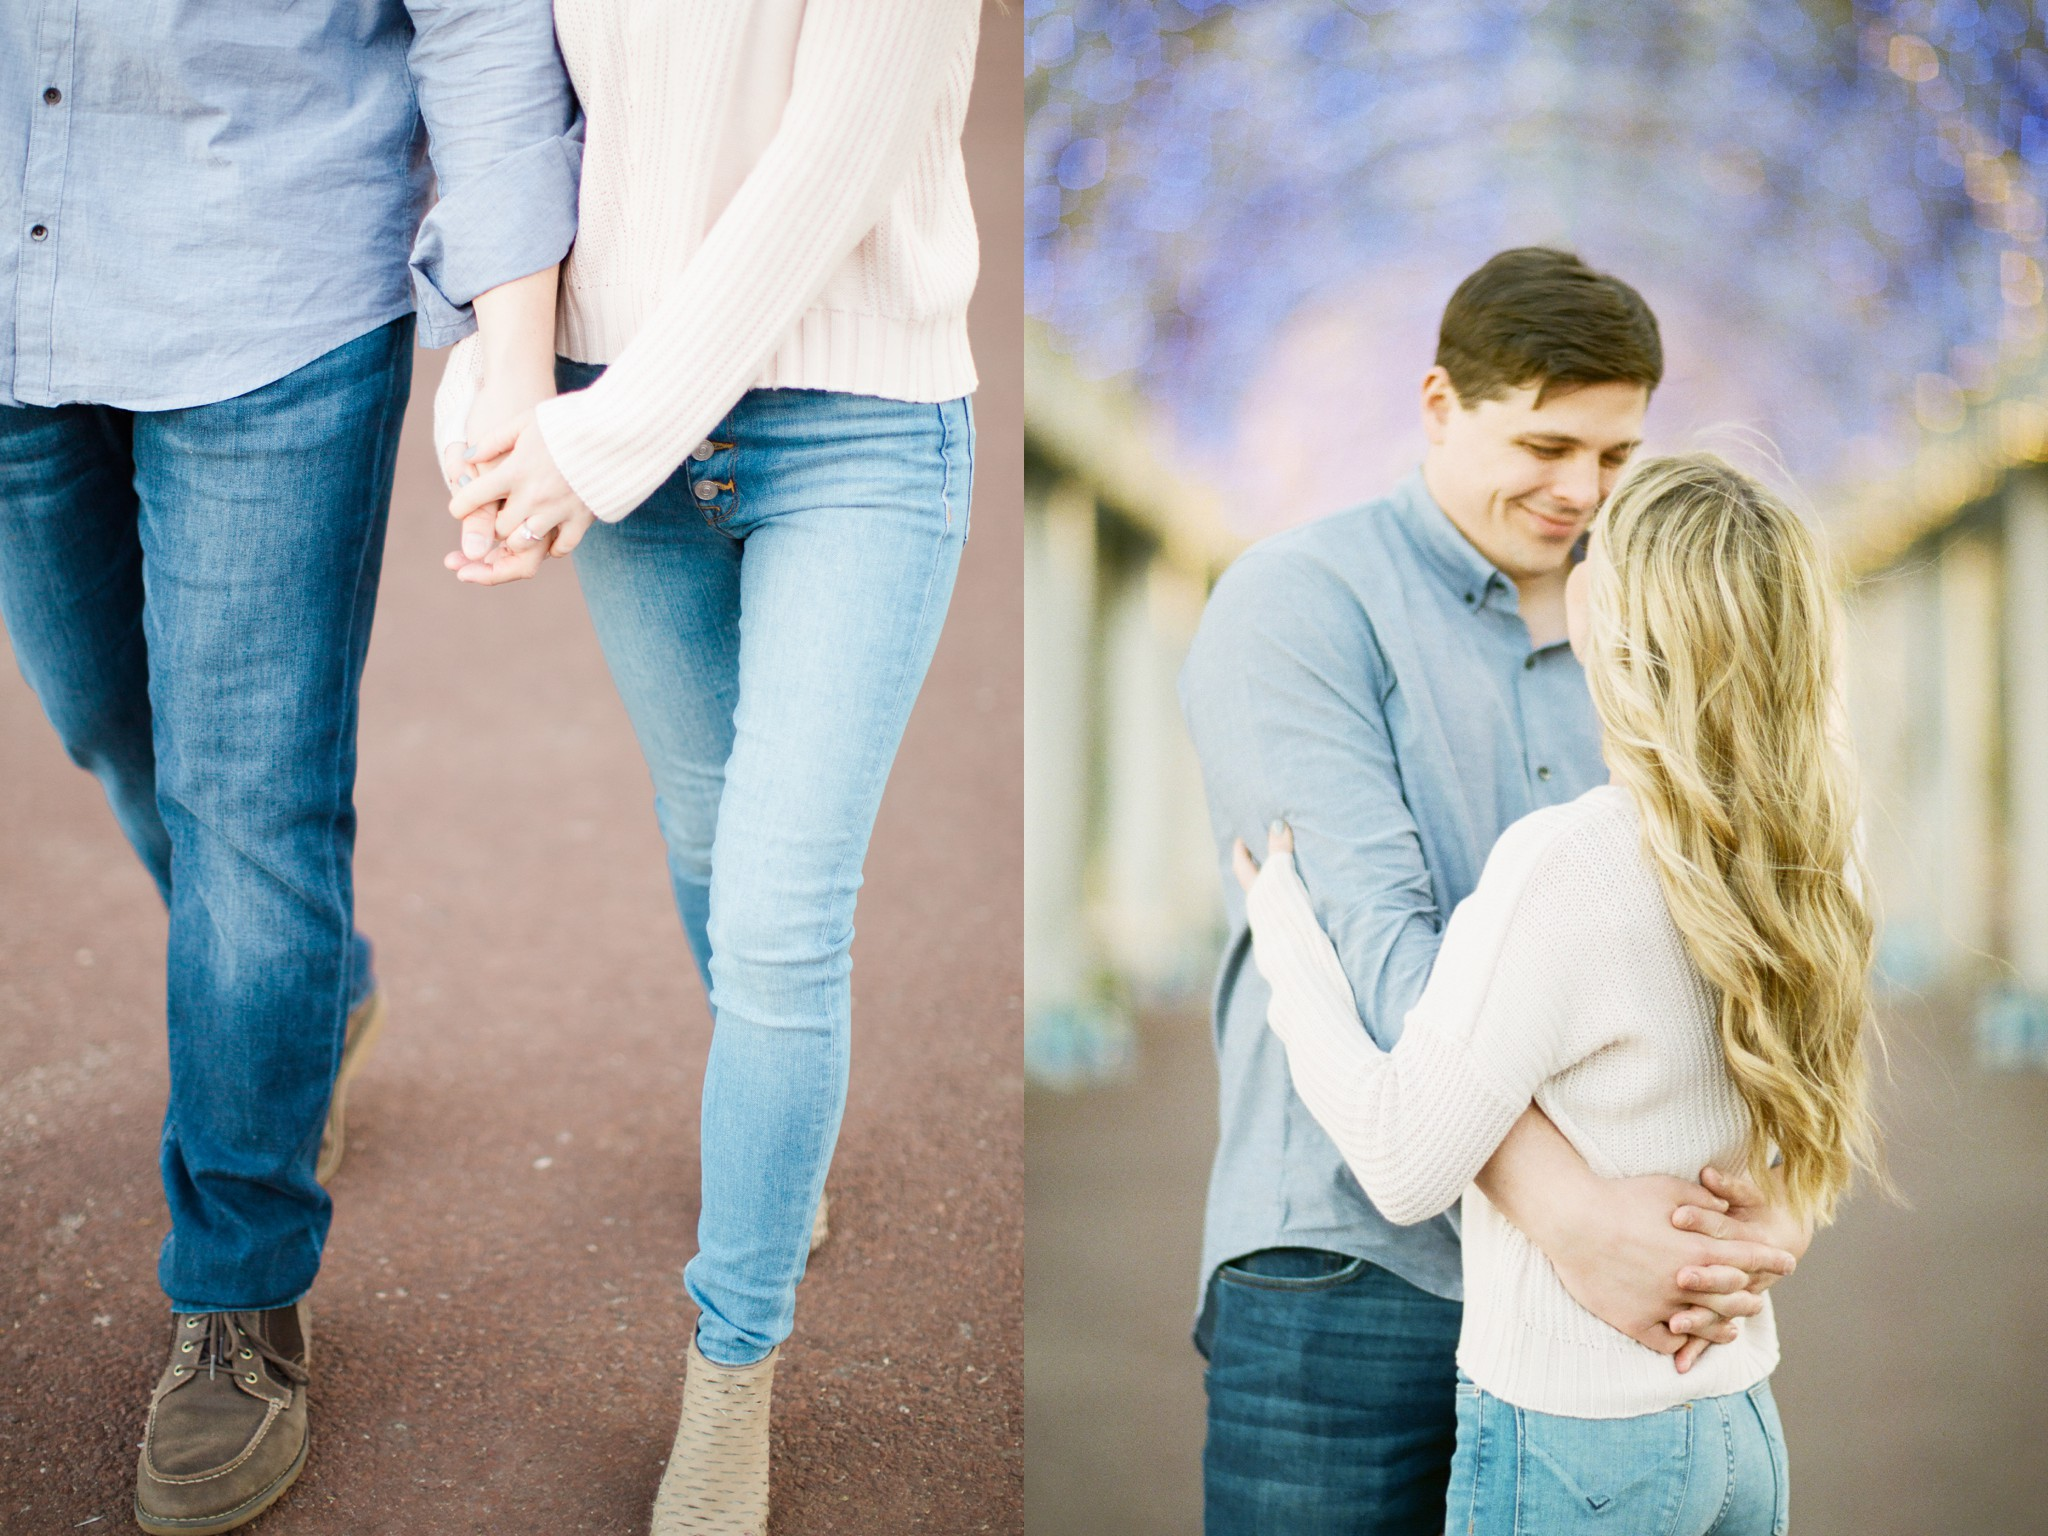 deborah_zoe_photography_engagement_session_0082.JPG